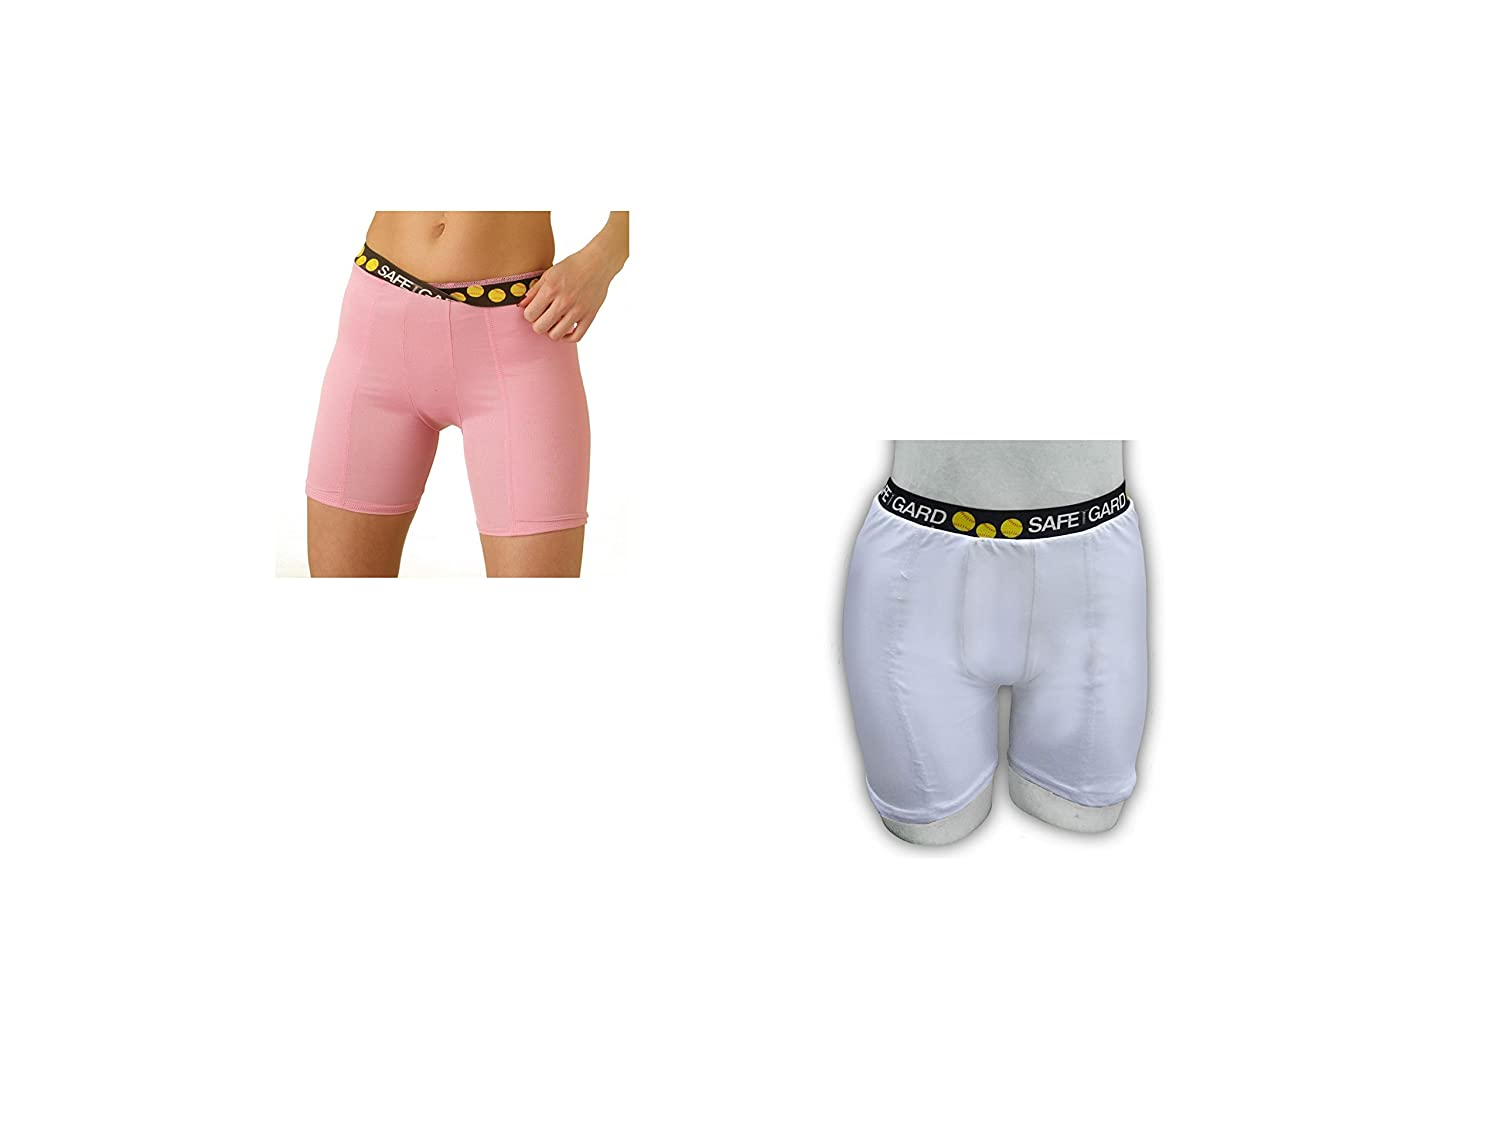 SafeTGard Womens Regular-Rise Sliding Shorts 5 Colors Available 2 Pack Special